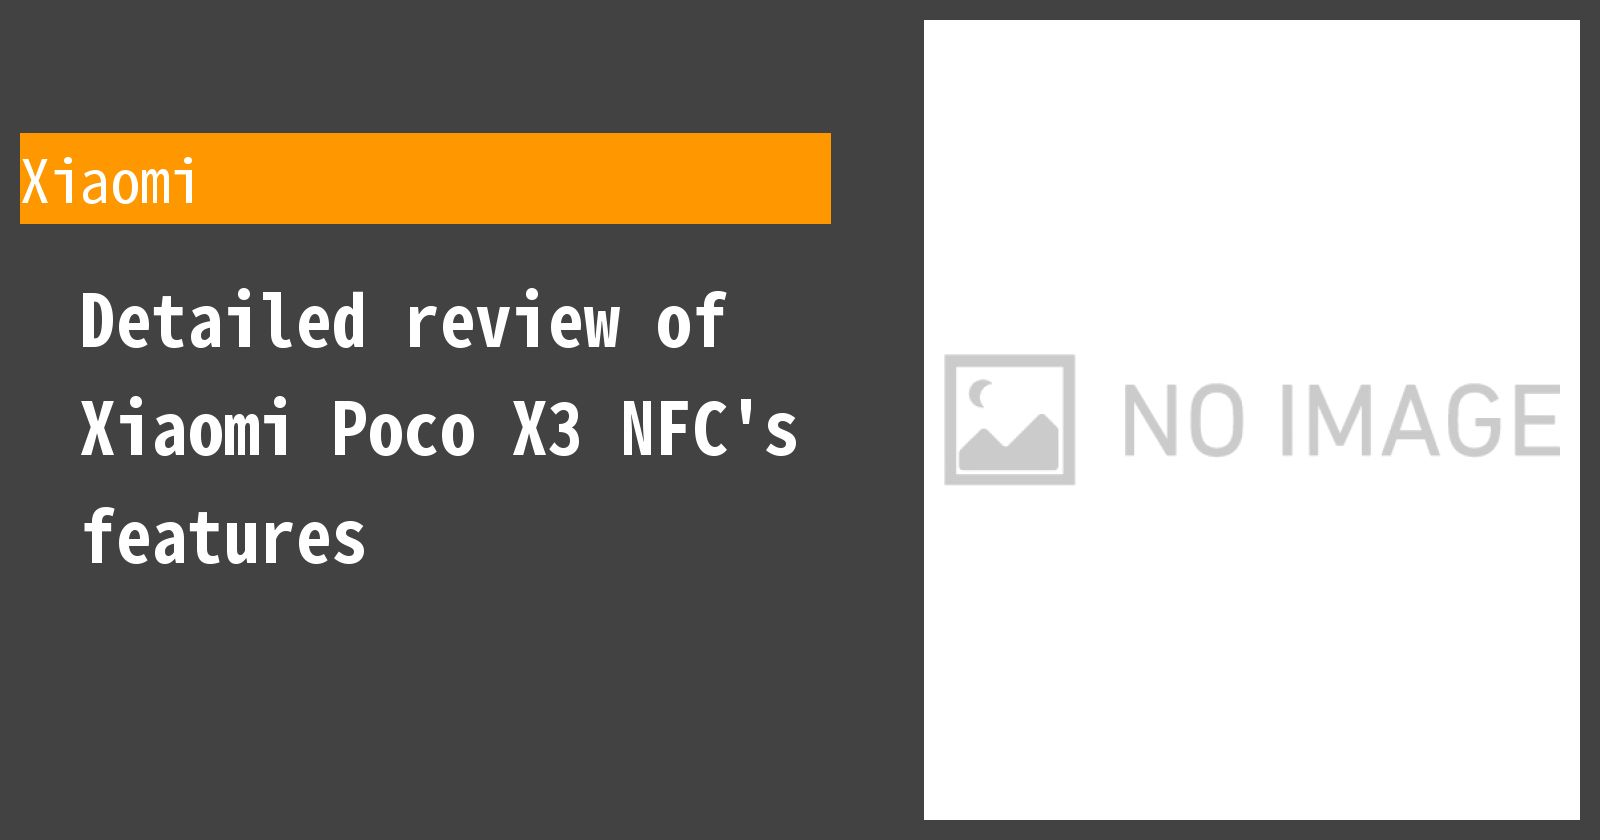 Detailed review of Xiaomi Poco X3 NFC's features